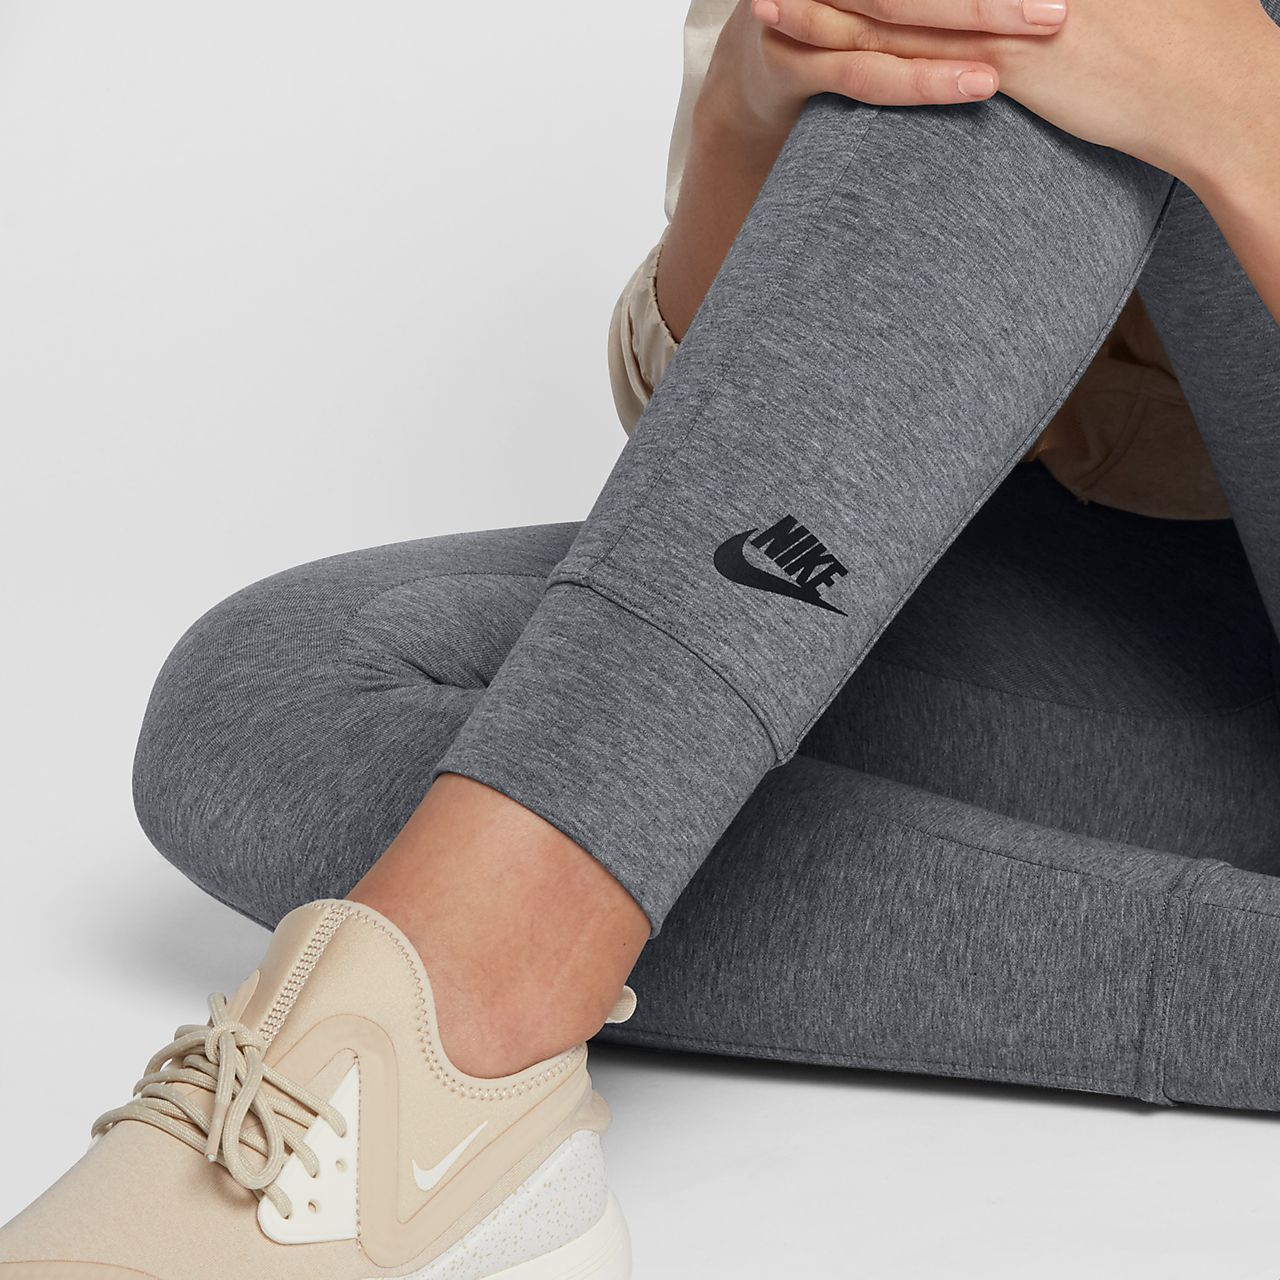 Low Resolution Nike Sportswear Essential Women's Leggings Nike Sportswear  Essential Women's Leggings